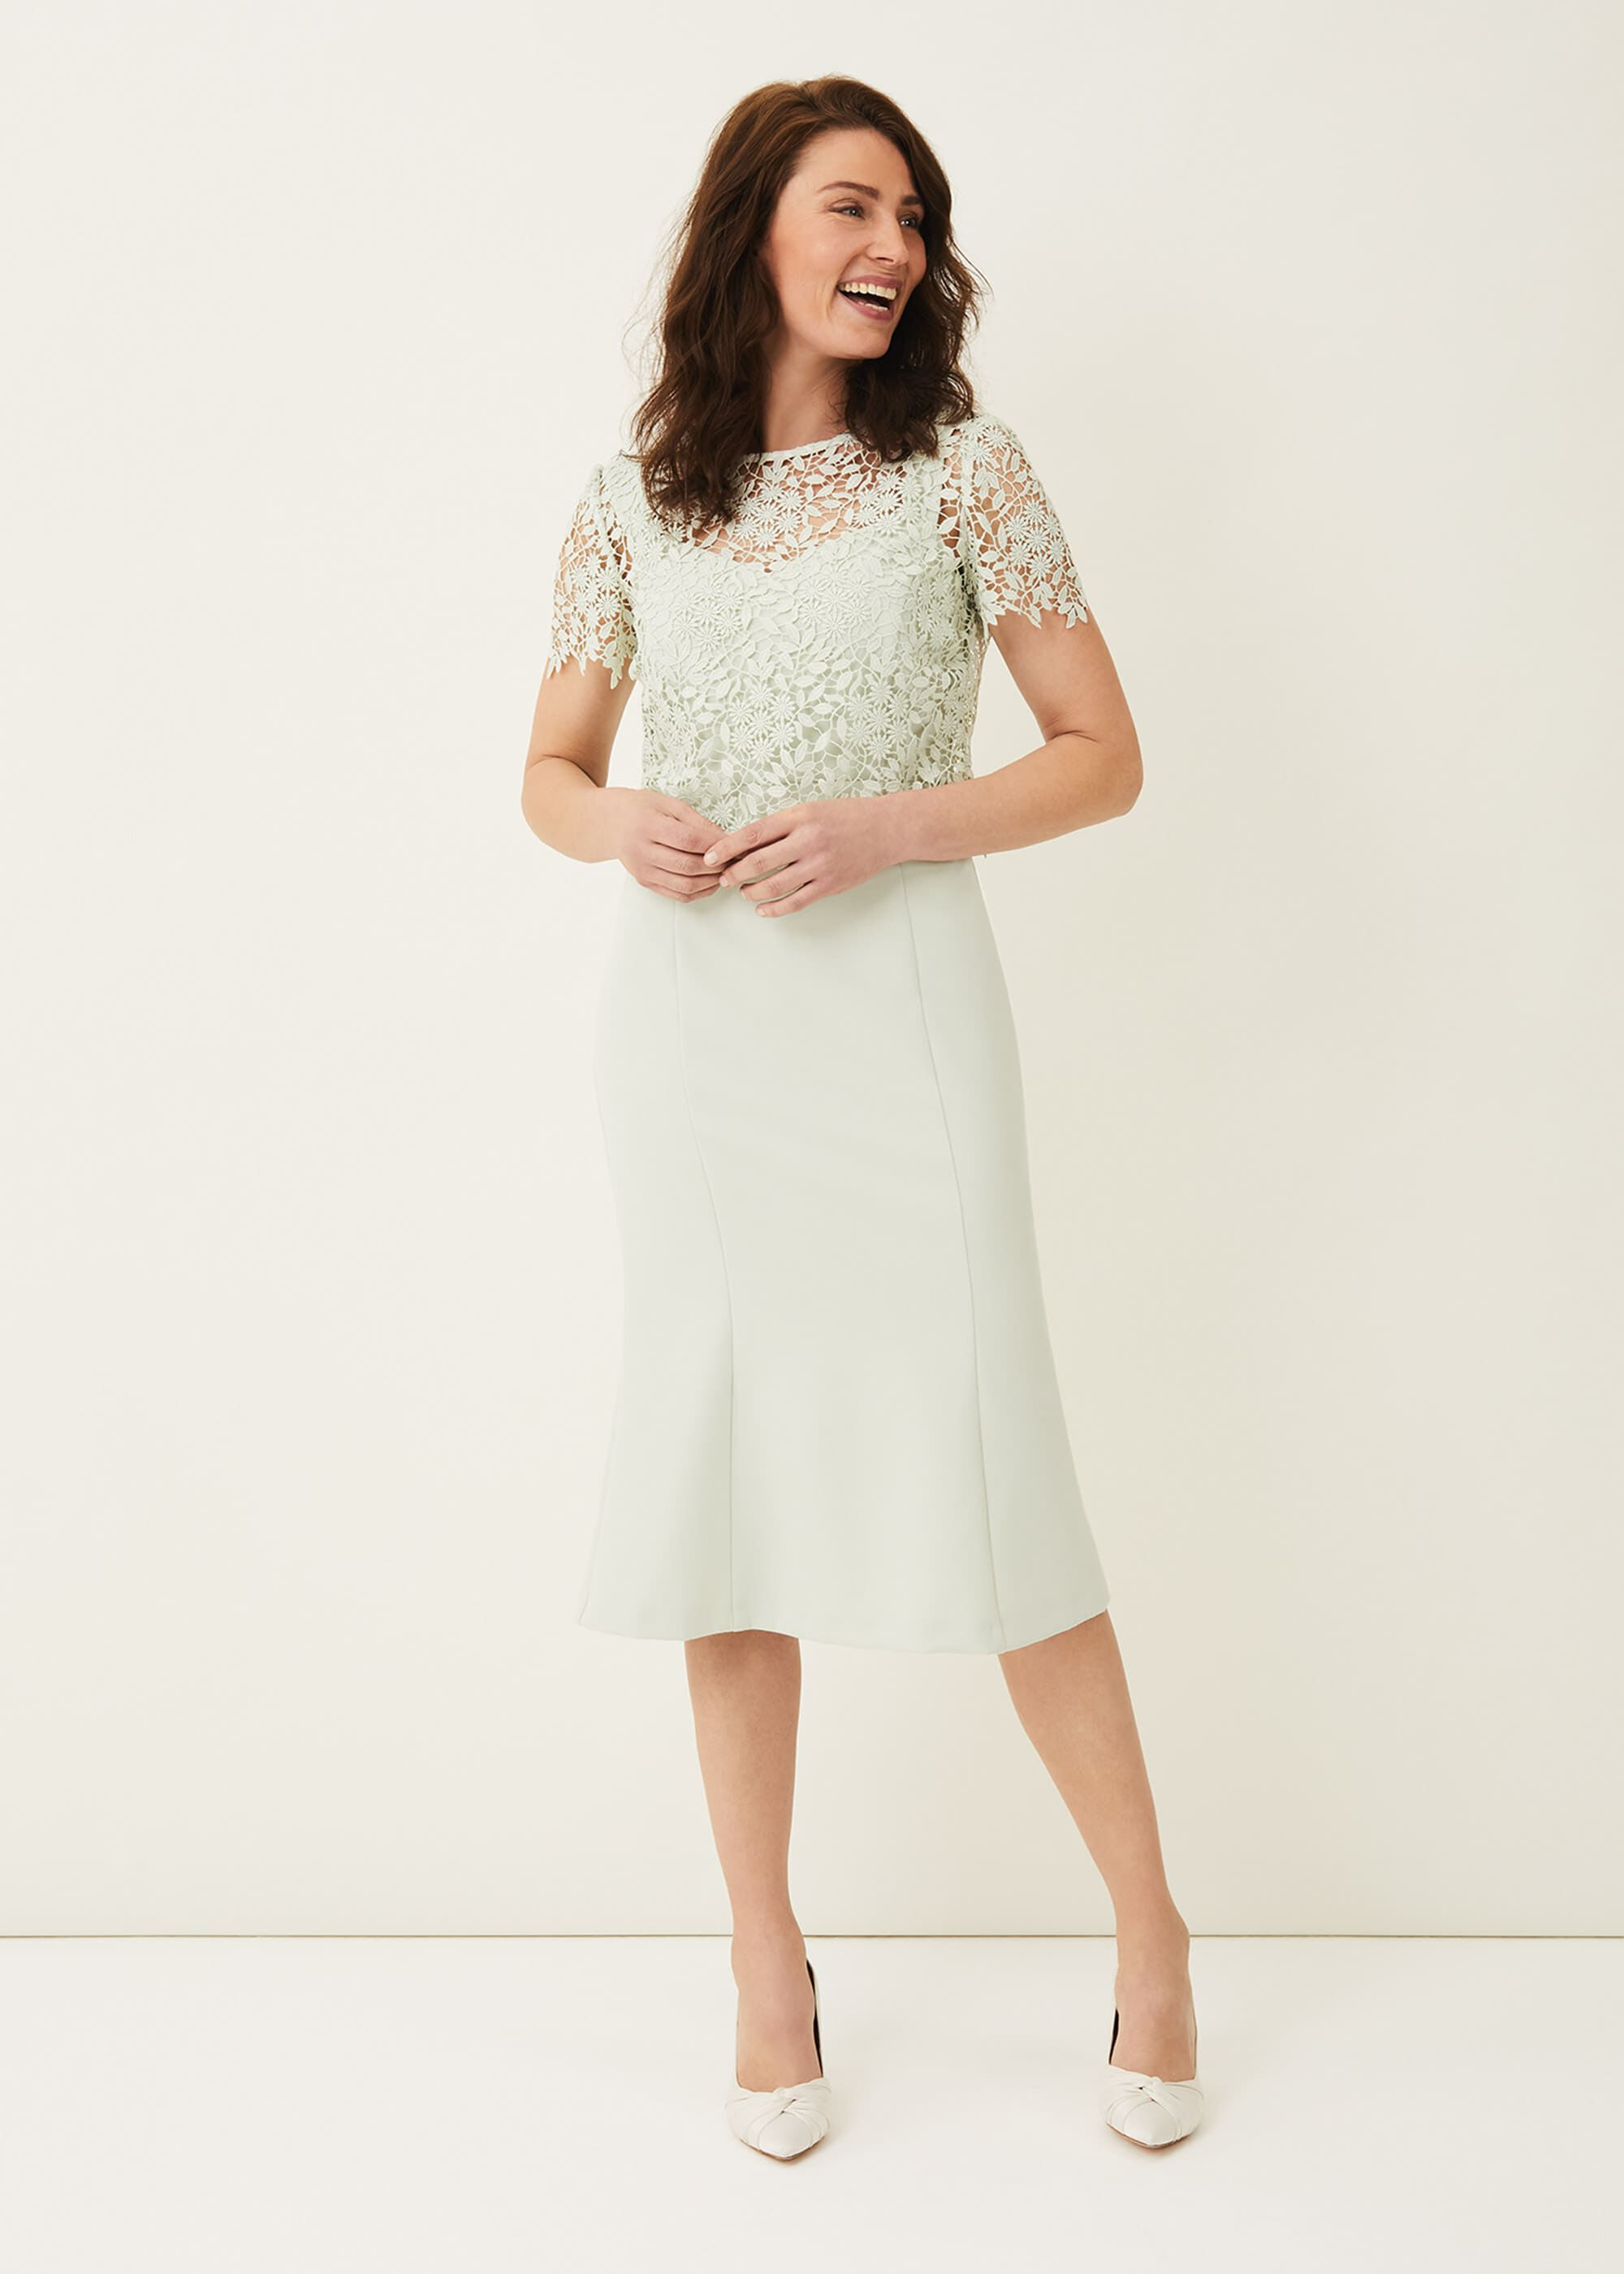 Phase Eight Georgia Layered Lace Dress, Green, Occasion Dress